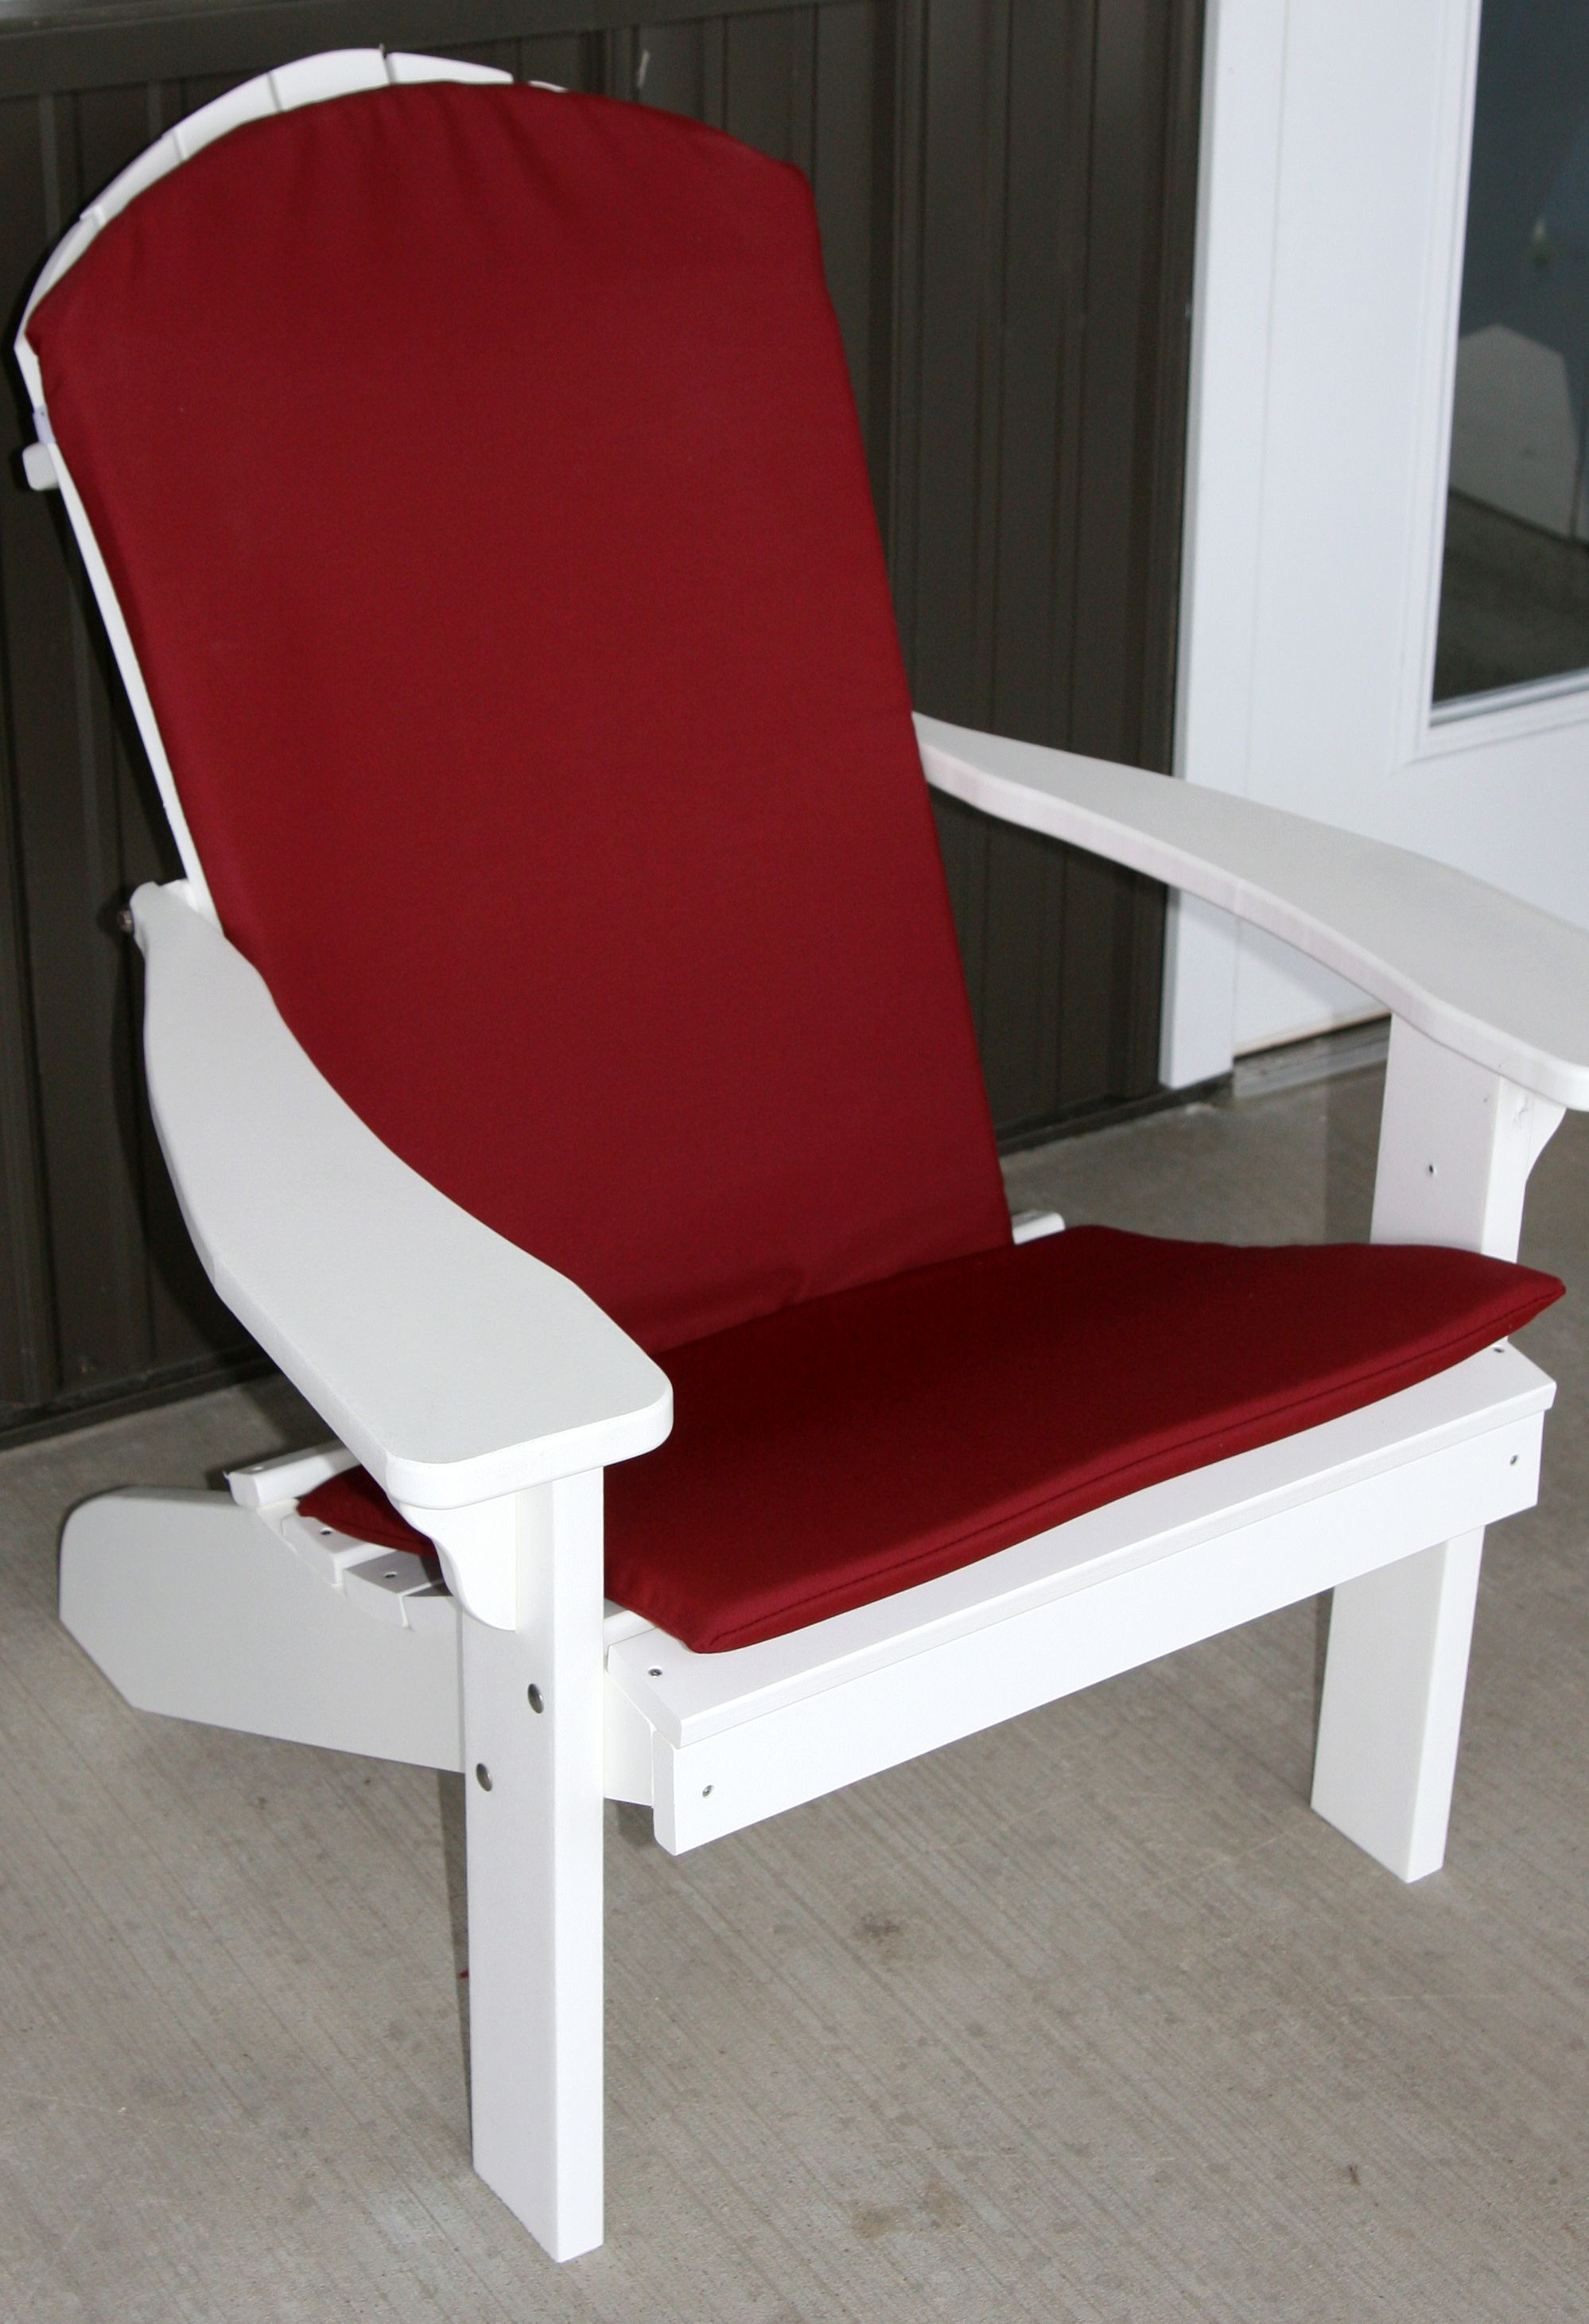 1 Inch Thick Seat & Back Cushions for Porch Rocker